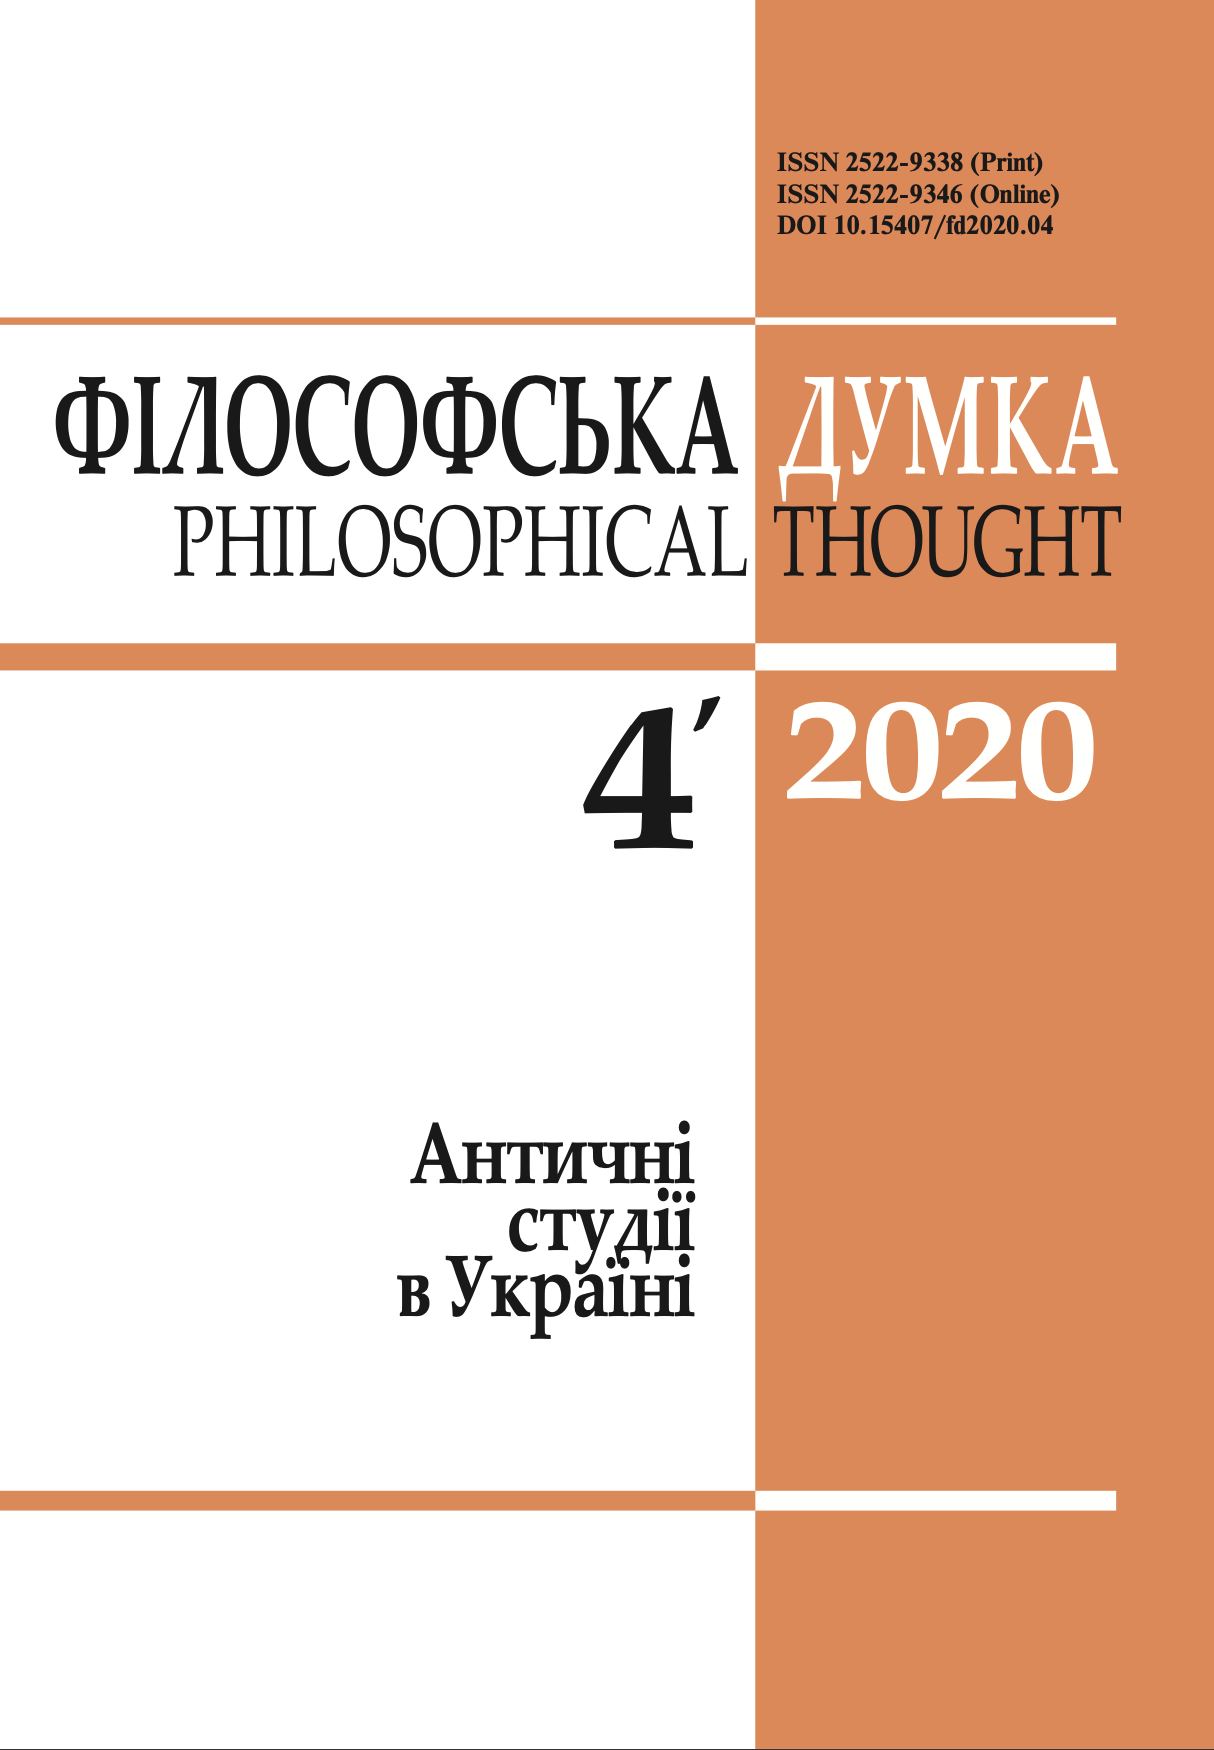 View No. 4 (2020): Philosophical thought